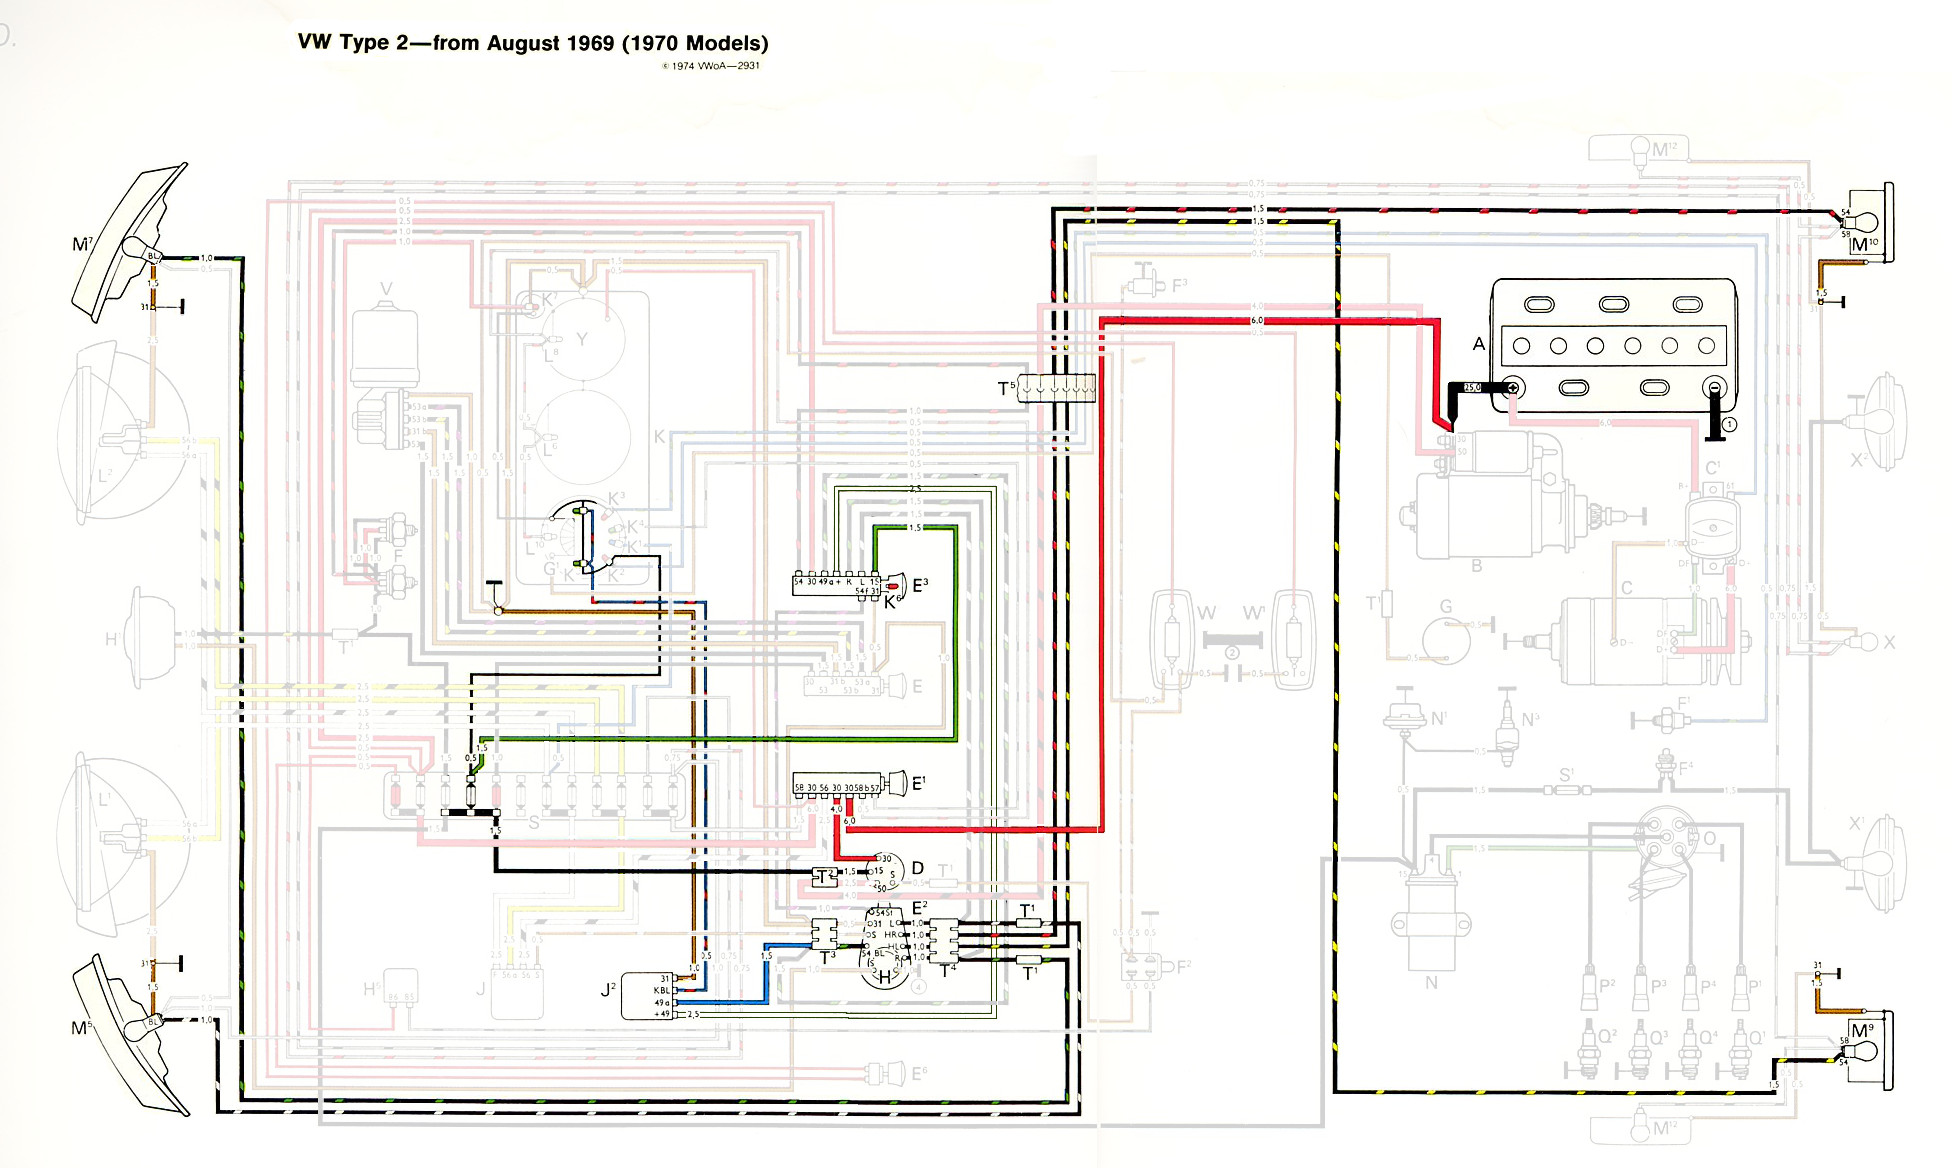 1970bus_signals 1970 vw beetle wiring diagram 1967 vw beetle wiring diagram Wiring Harness Diagram at sewacar.co